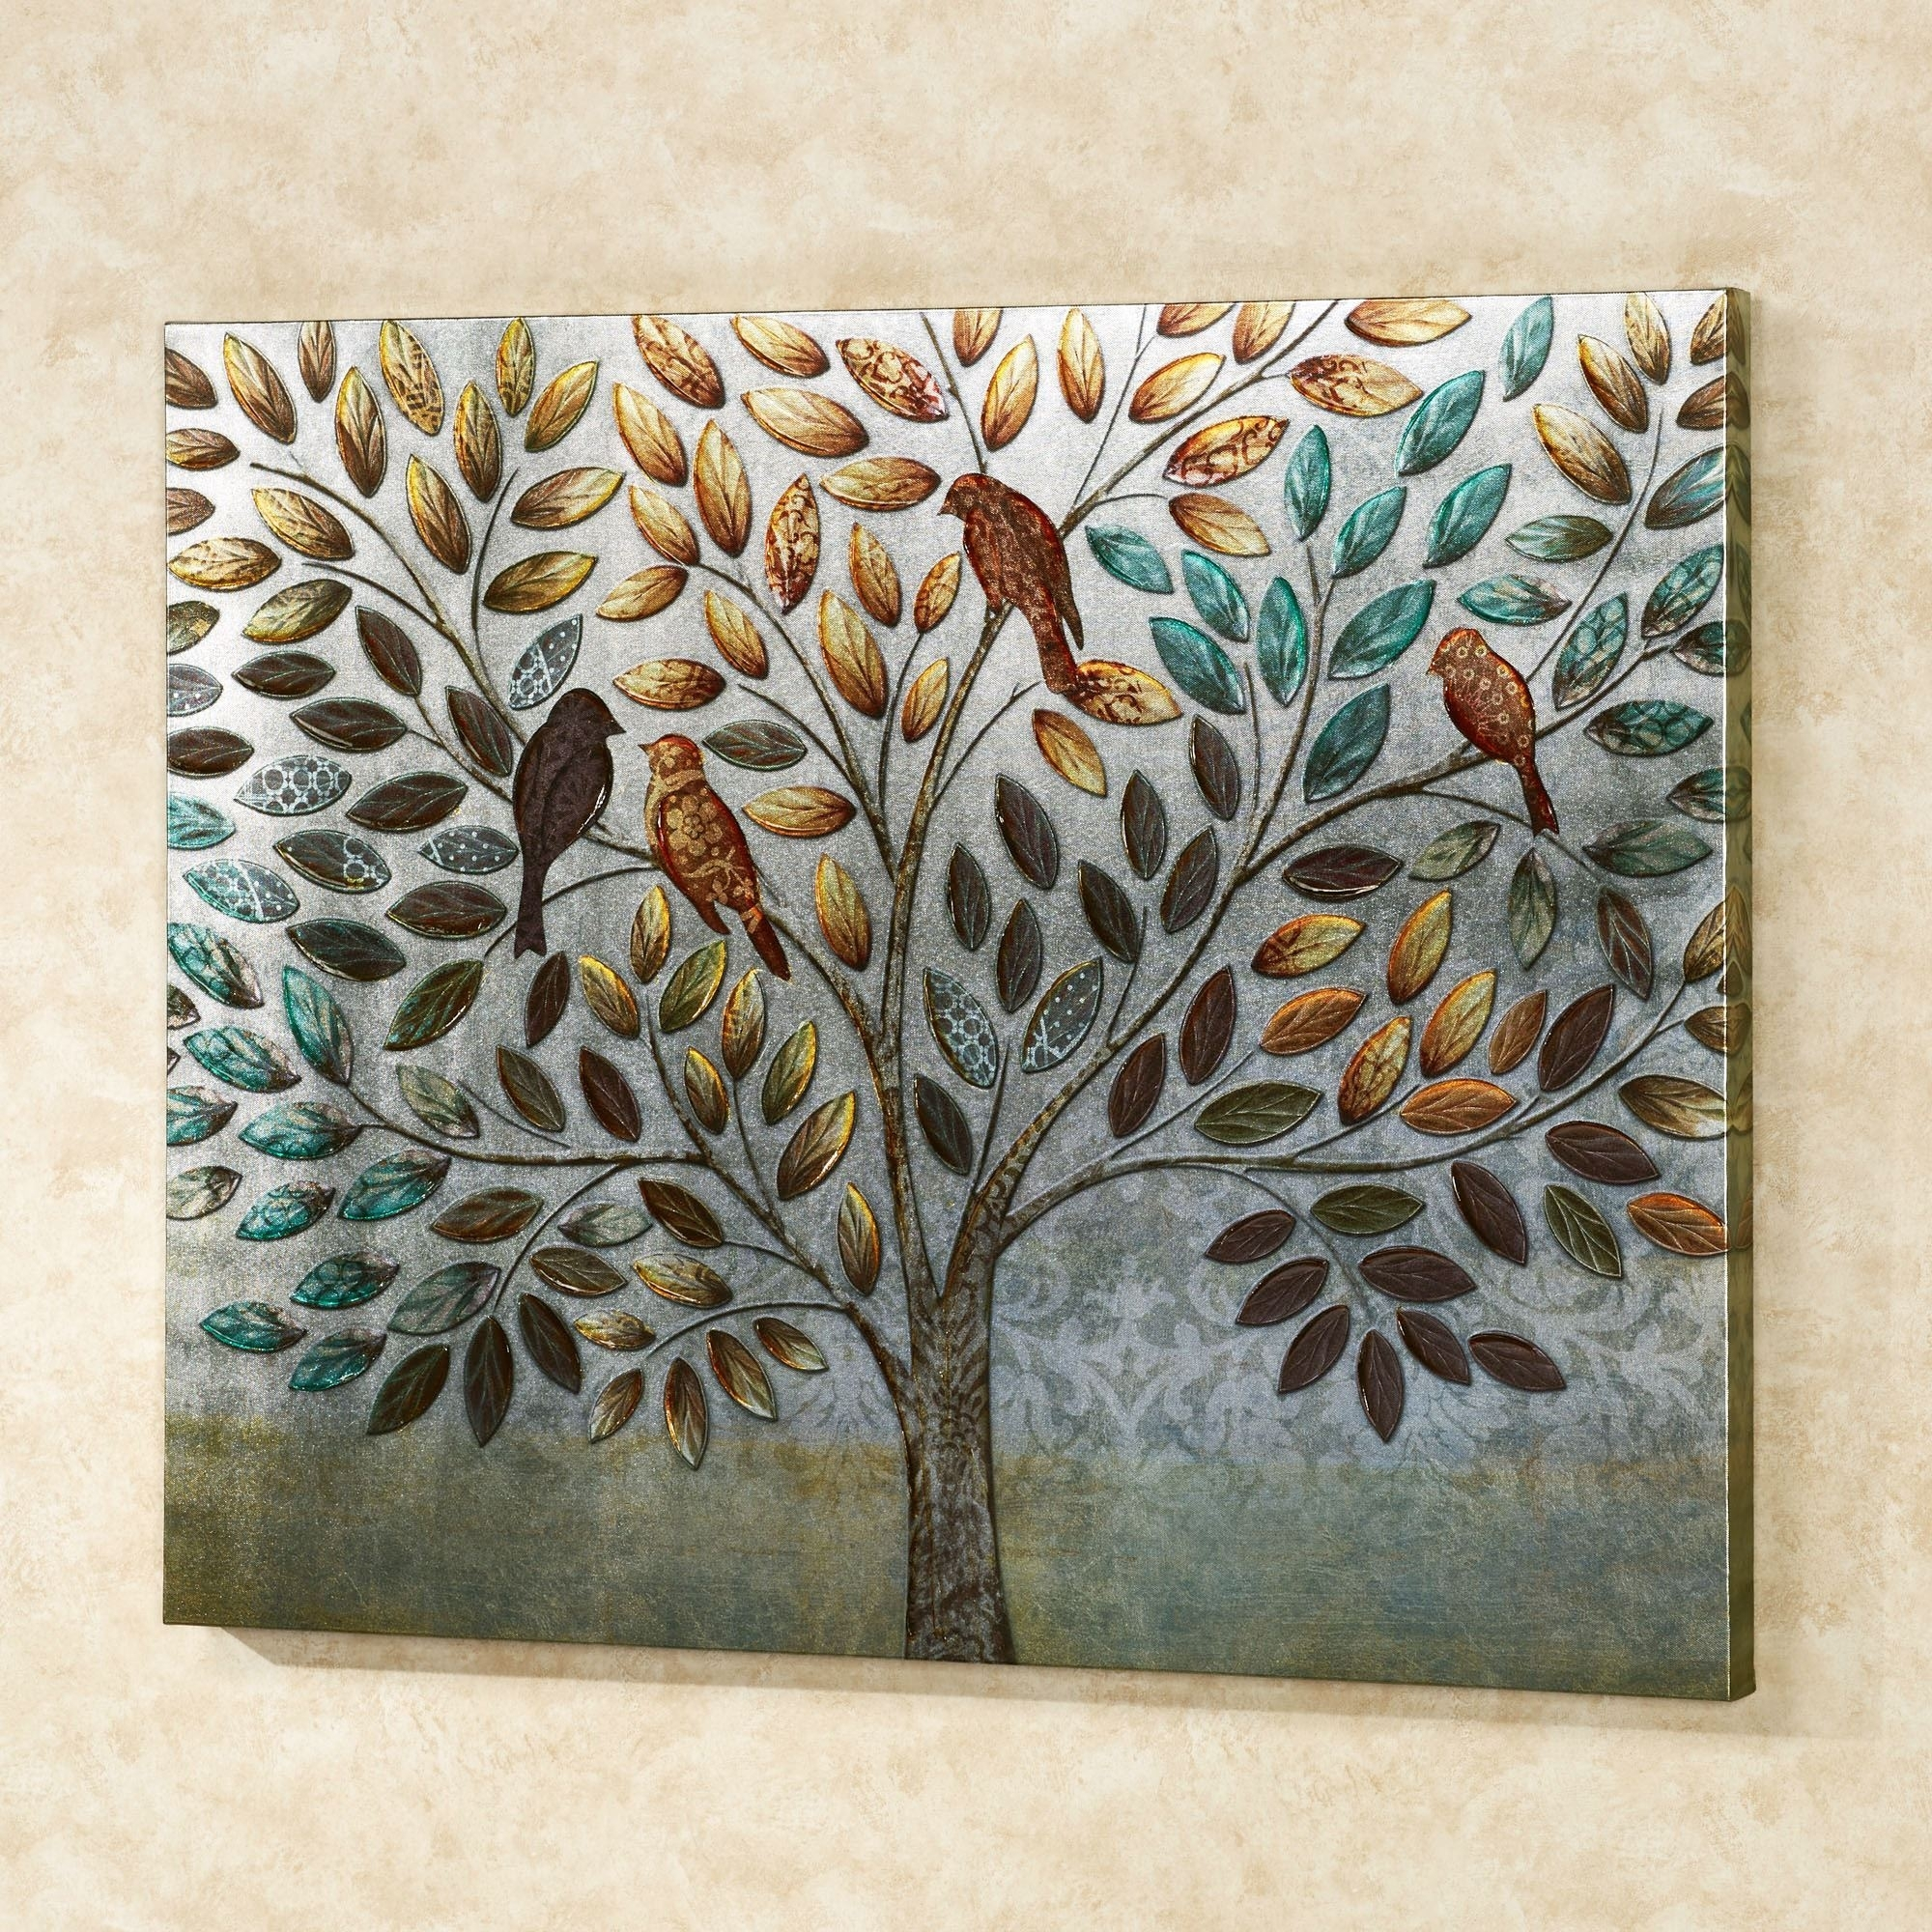 Home Decor: Bautiful Canvas Artwork Perfect With Natures Splendor intended for Bird Framed Canvas Wall Art (Image 14 of 20)